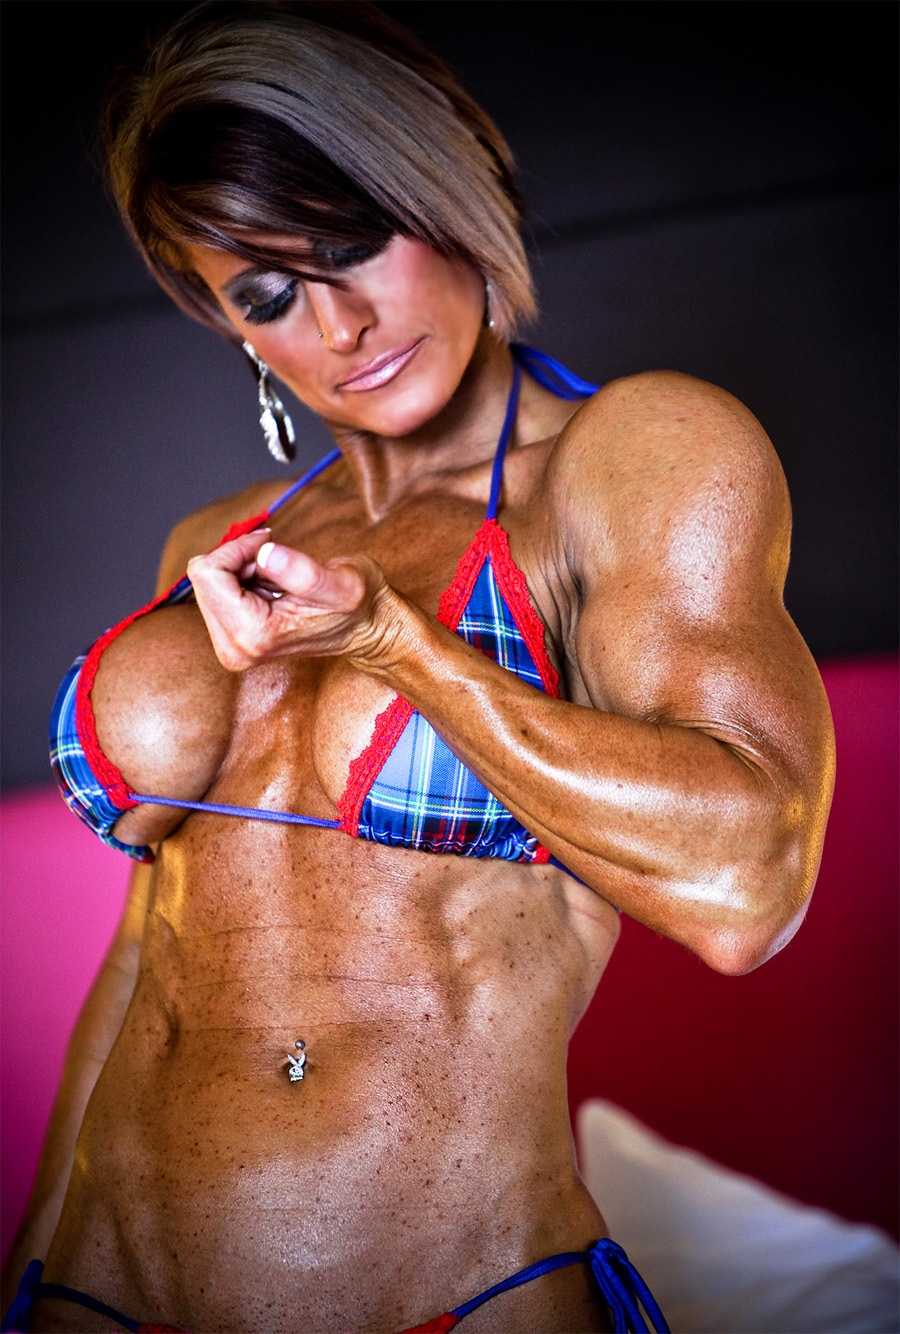 Sey Babe With Big Boobs And Fitness Rock Hard Muscles Very